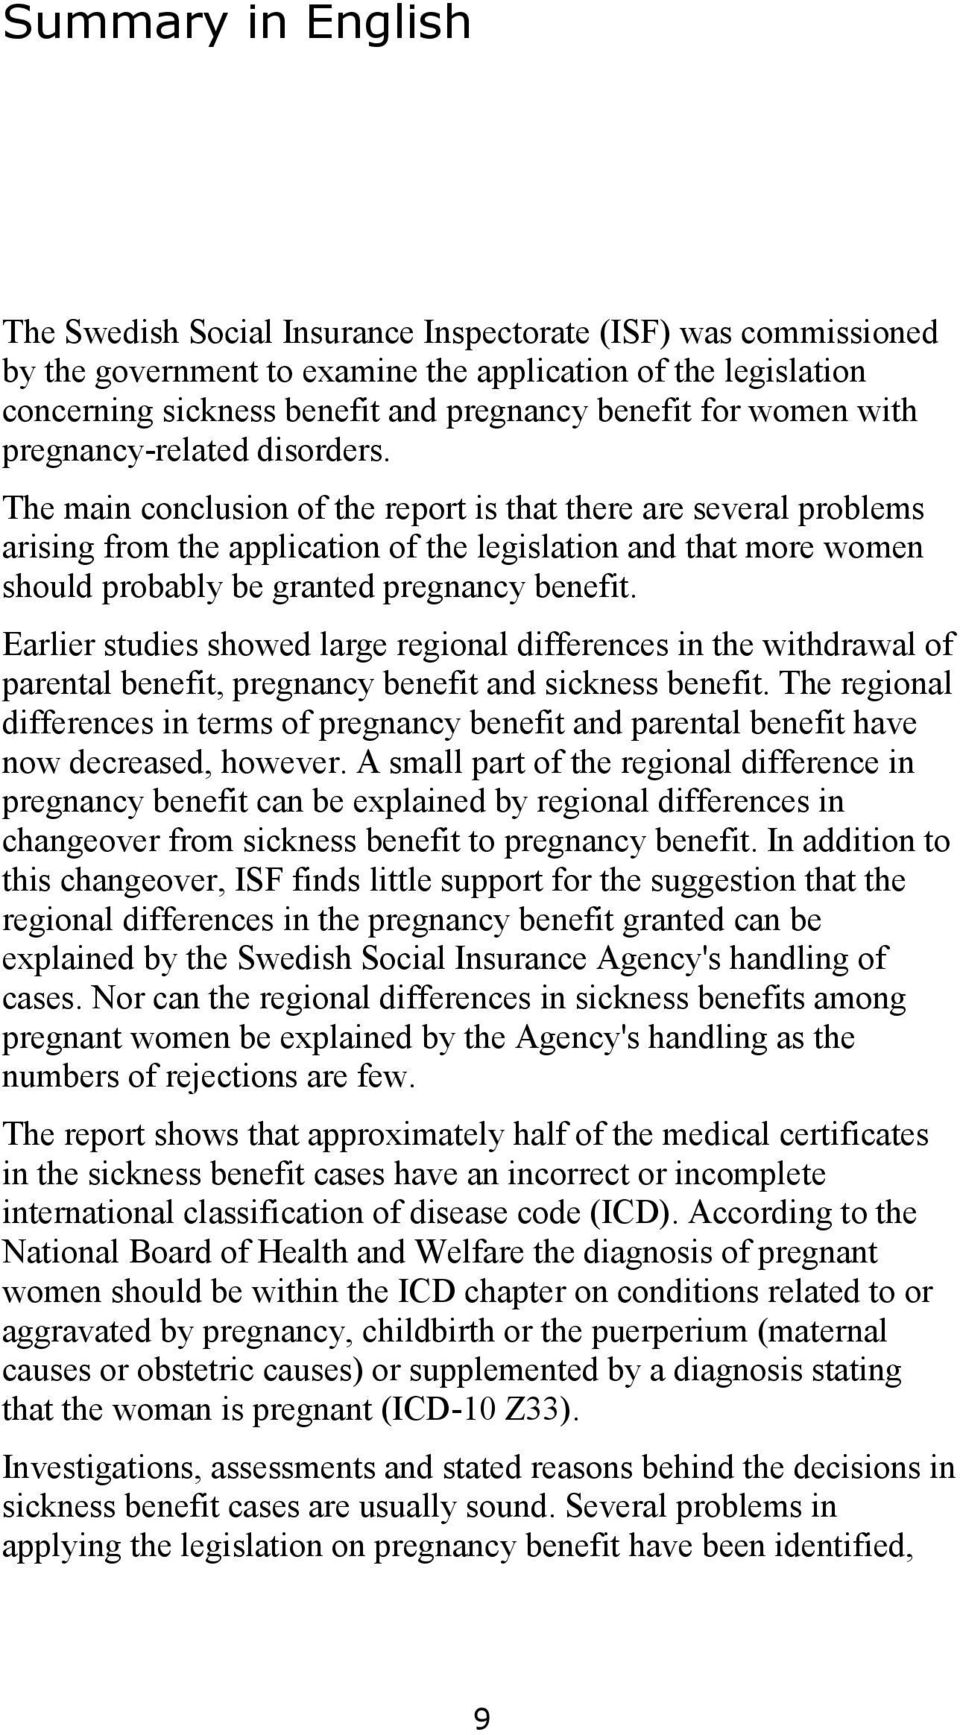 The main conclusion of the report is that there are several problems arising from the application of the legislation and that more women should probably be granted pregnancy benefit.